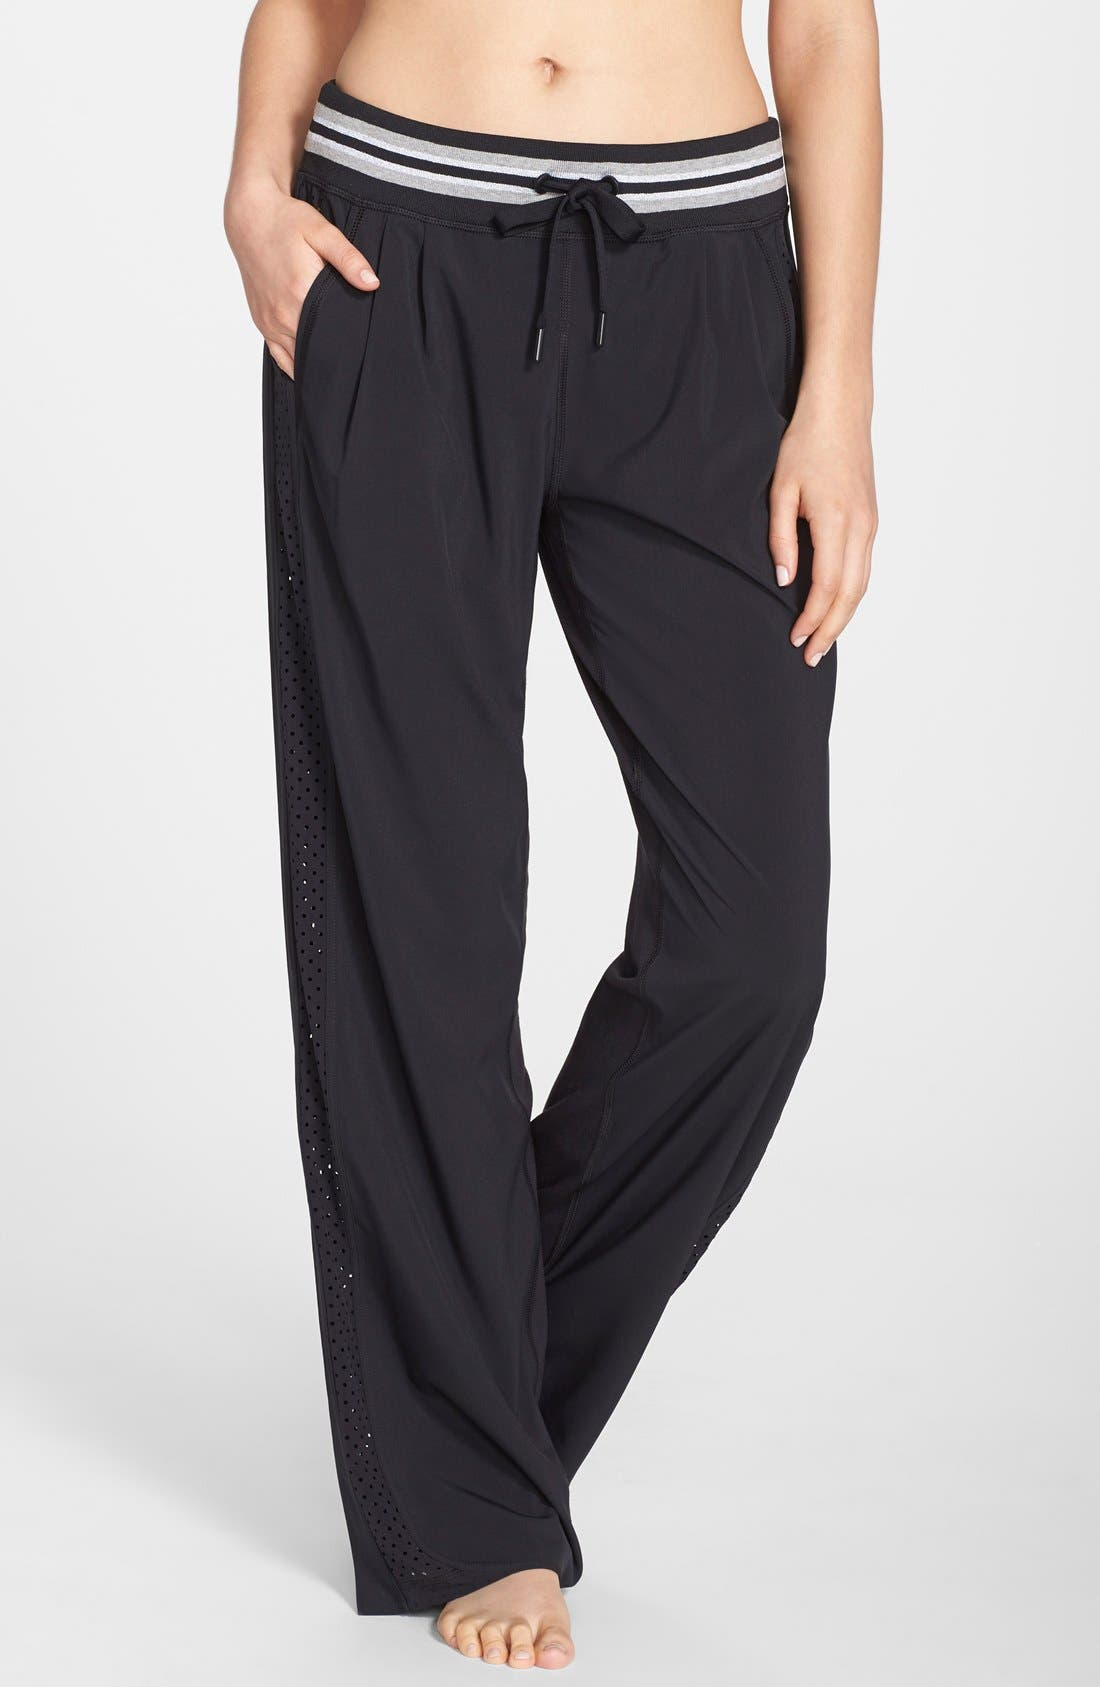 Alternate Image 1 Selected - Zella Side Zip Track Pants